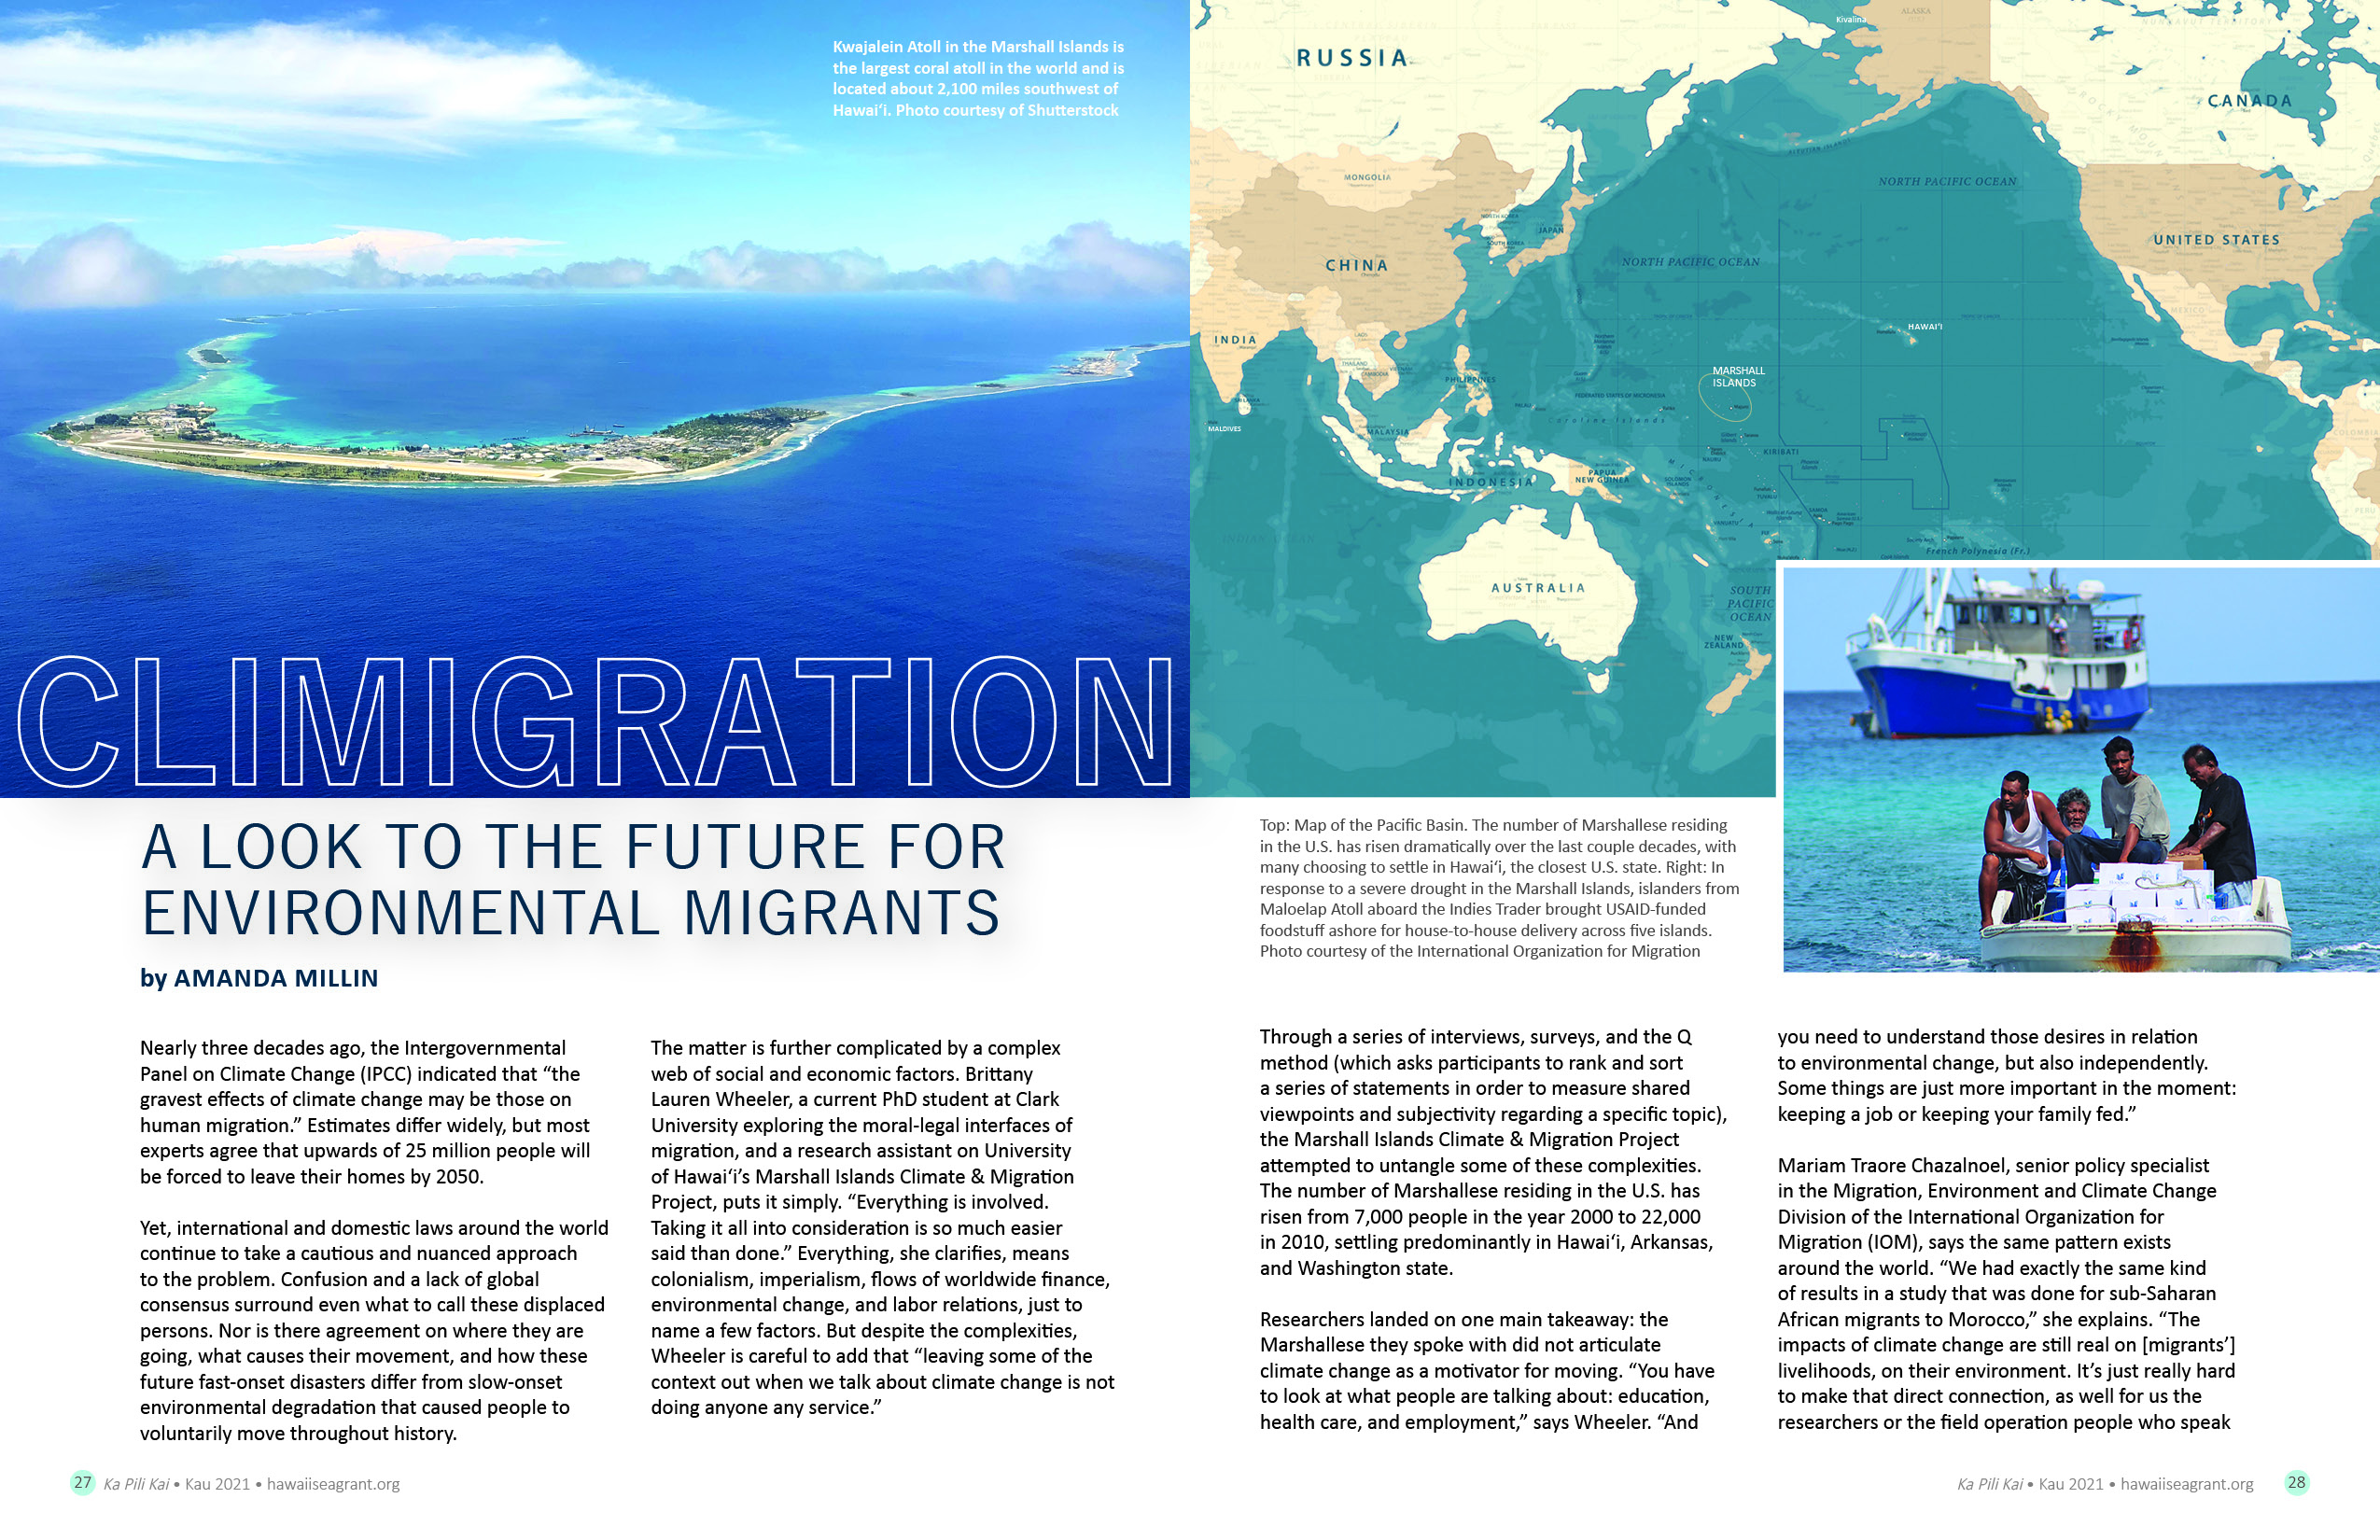 Climigration: A look to the future for environmental migrants